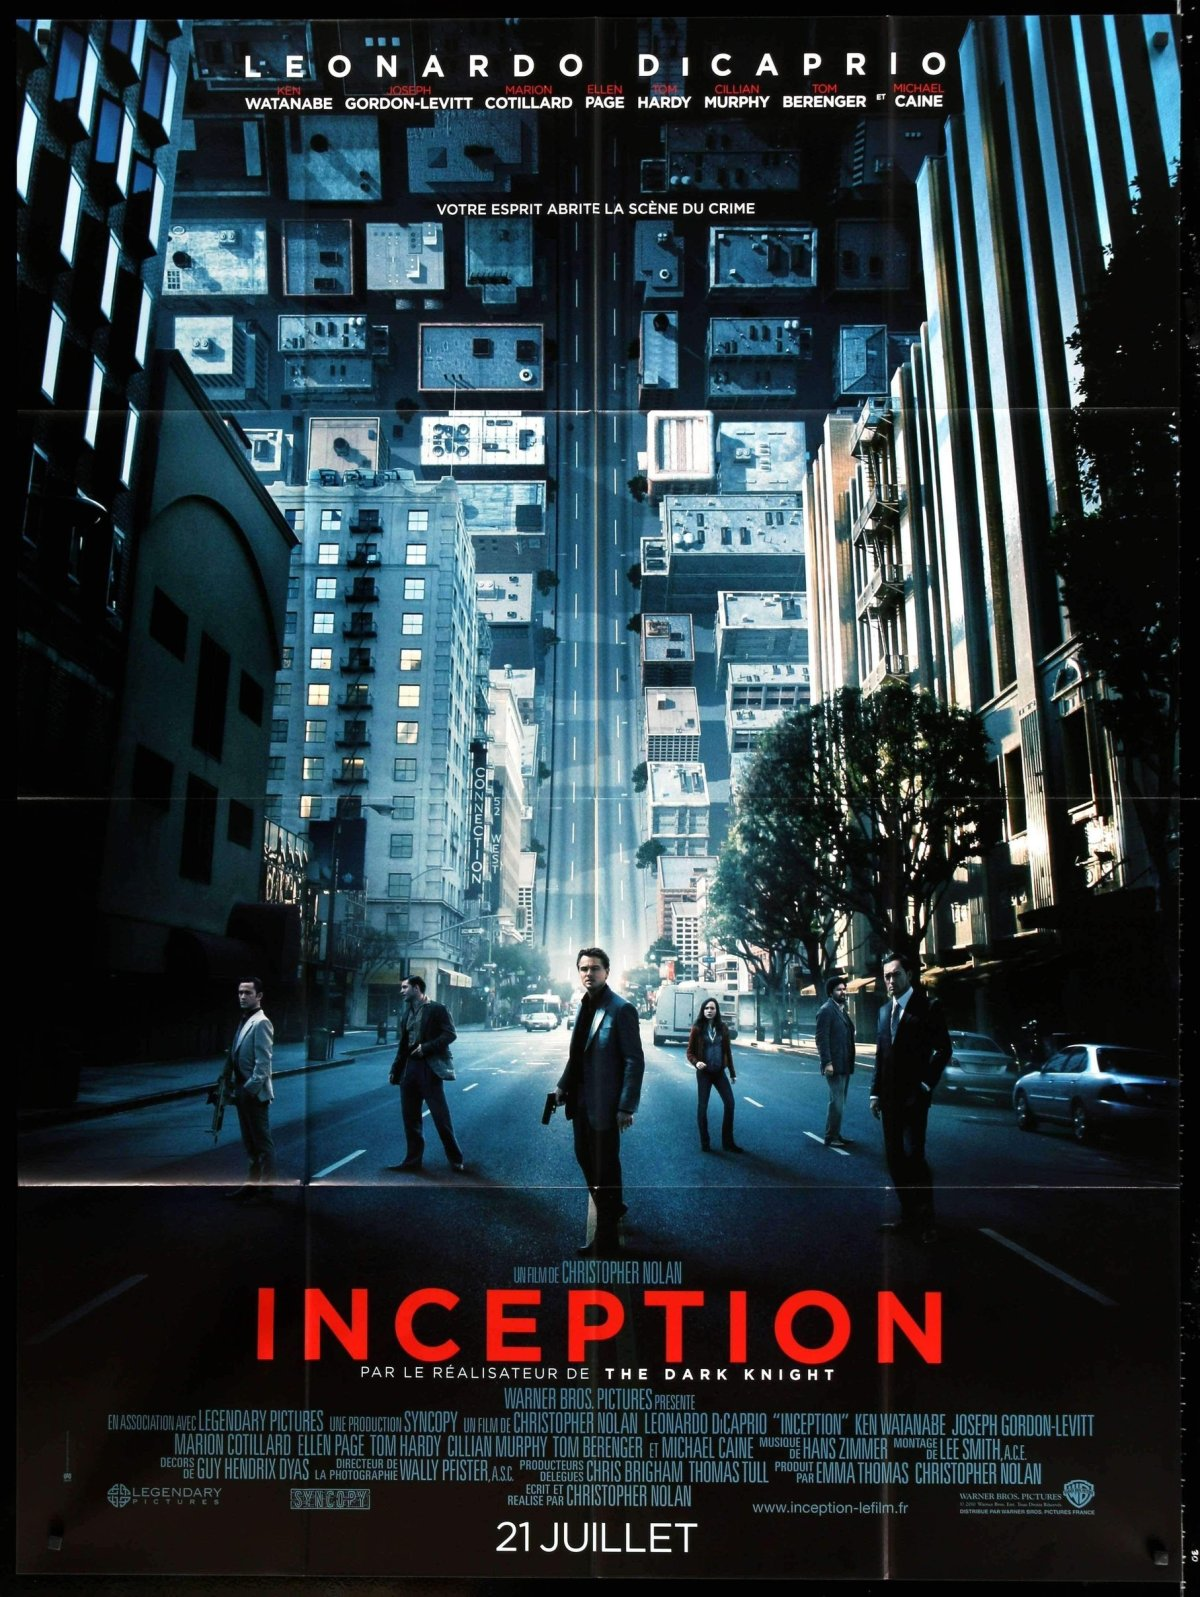 inception_2010_french_original_film_art_spo_2000x.jpg